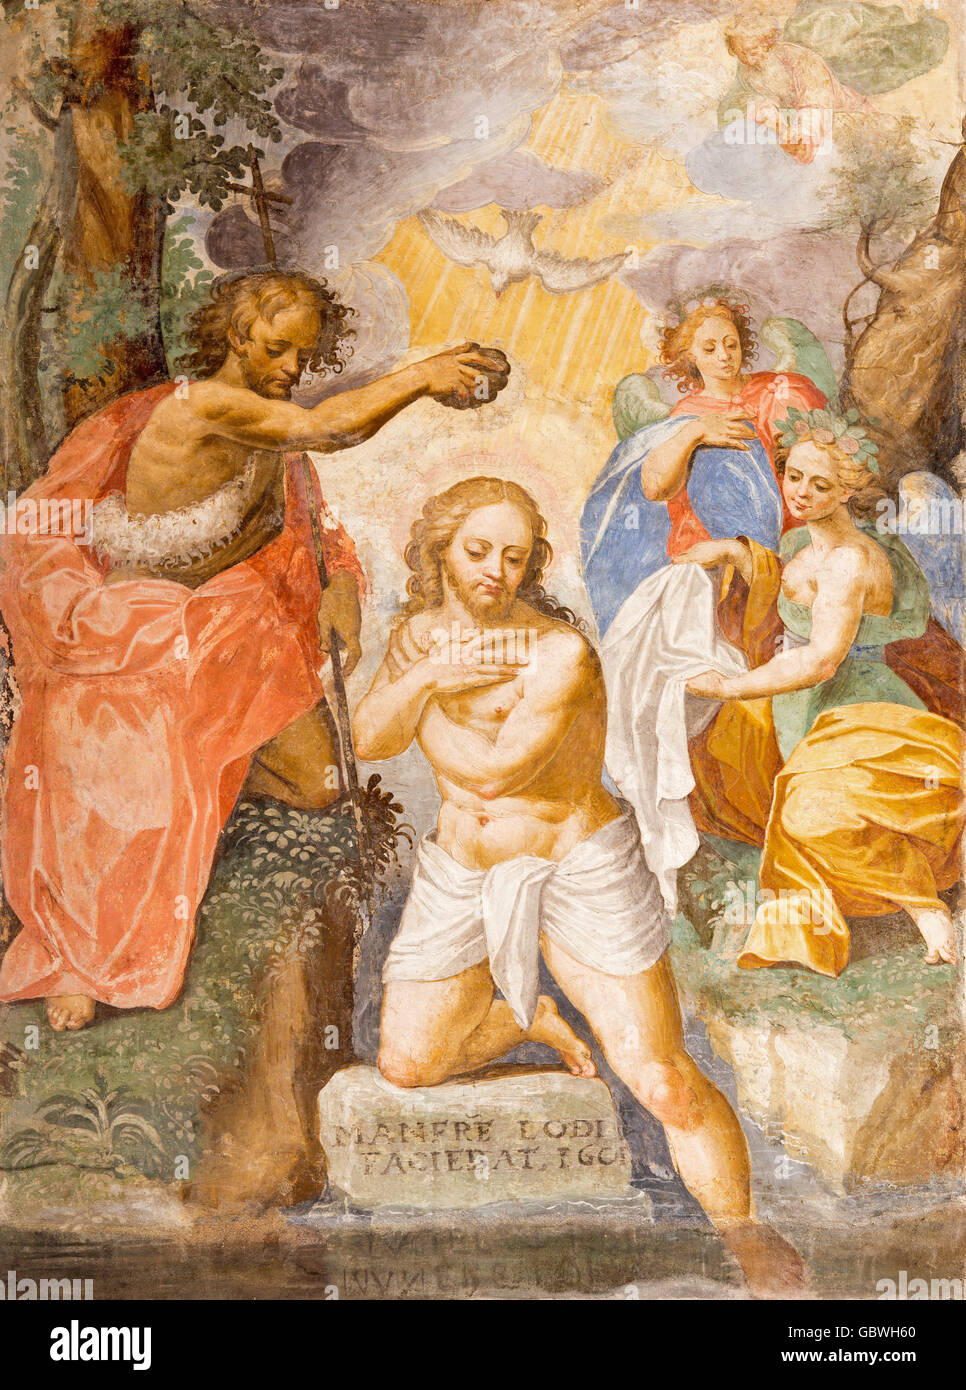 CREMONA, ITALY - MAY 24, 2016: The fresco of Baptism of Christ in Chiesa di San Agostino by A. Mainardi (1593). - Stock Image